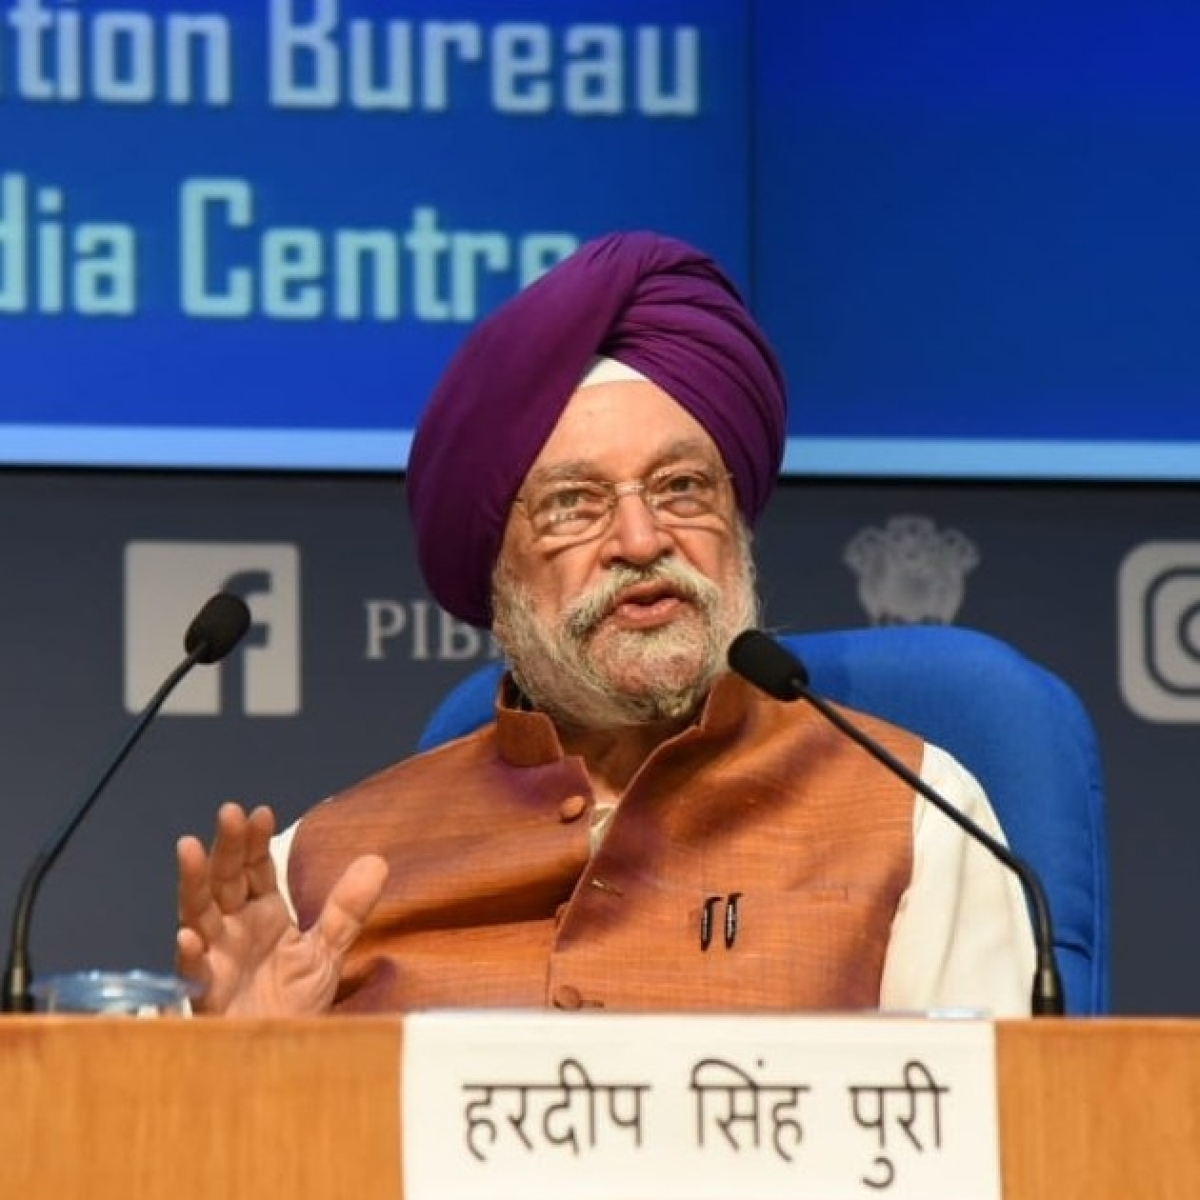 40 percent of our population will live in urban centres by 2030: Hardeep Singh Puri